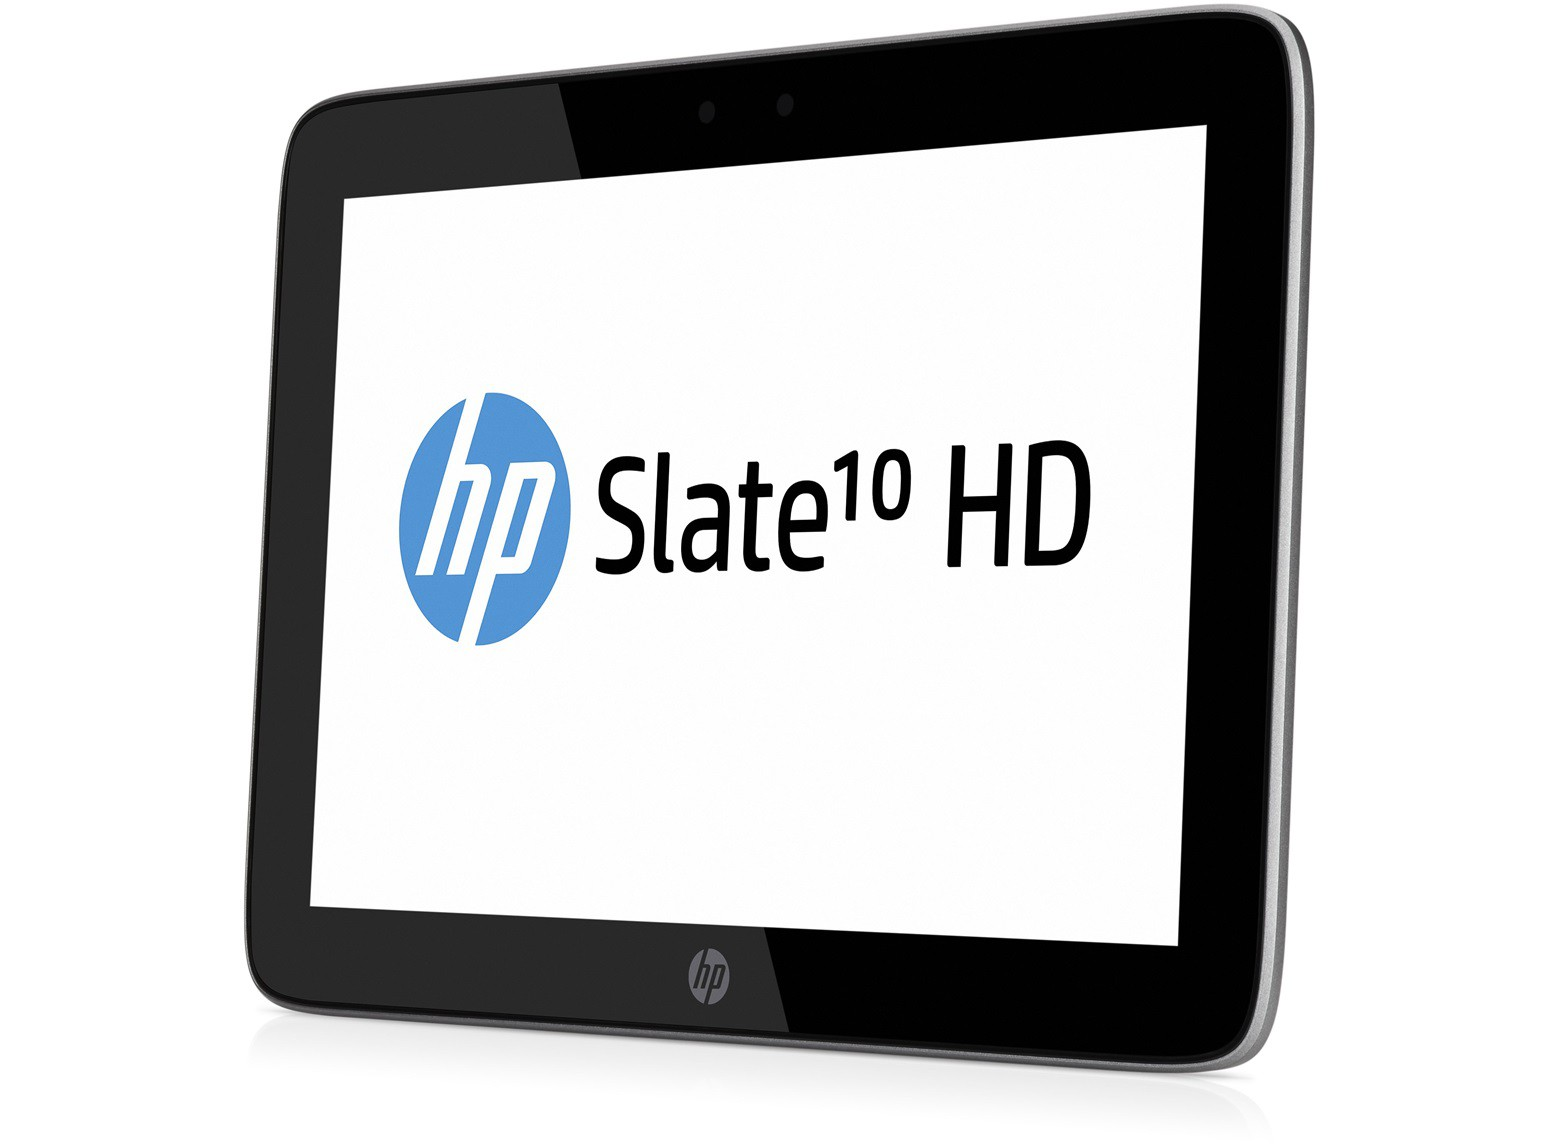 HP Slate 10 HD ROMs